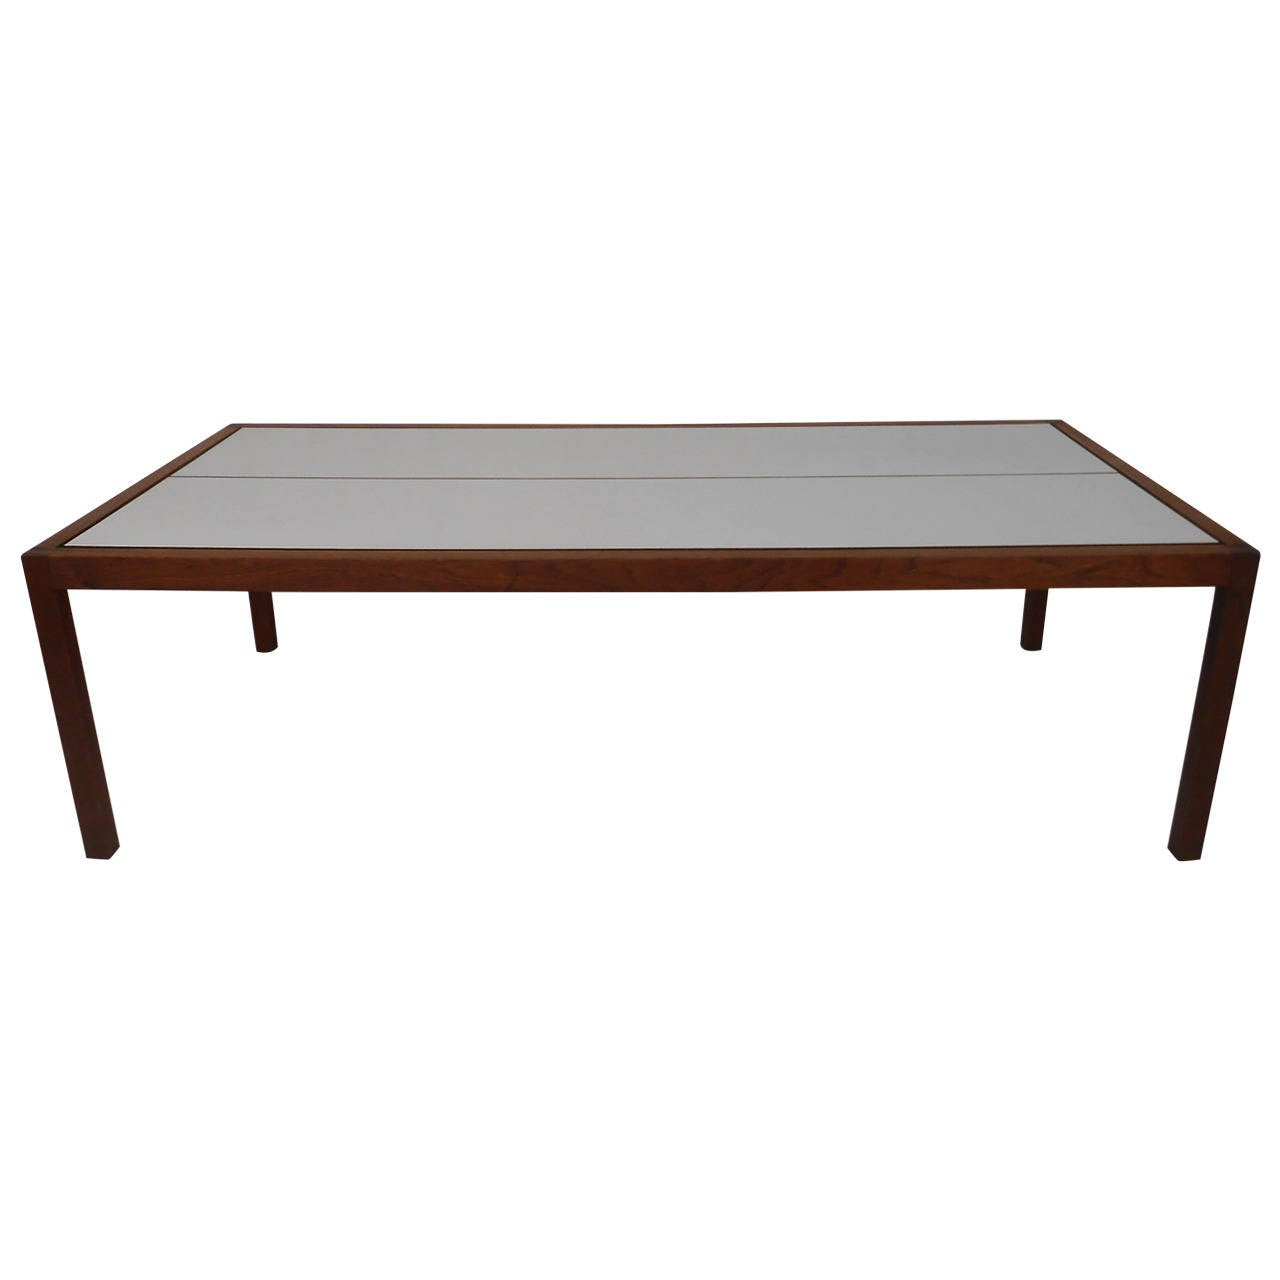 Knoll Coffee Table For Sale At 1stdibs